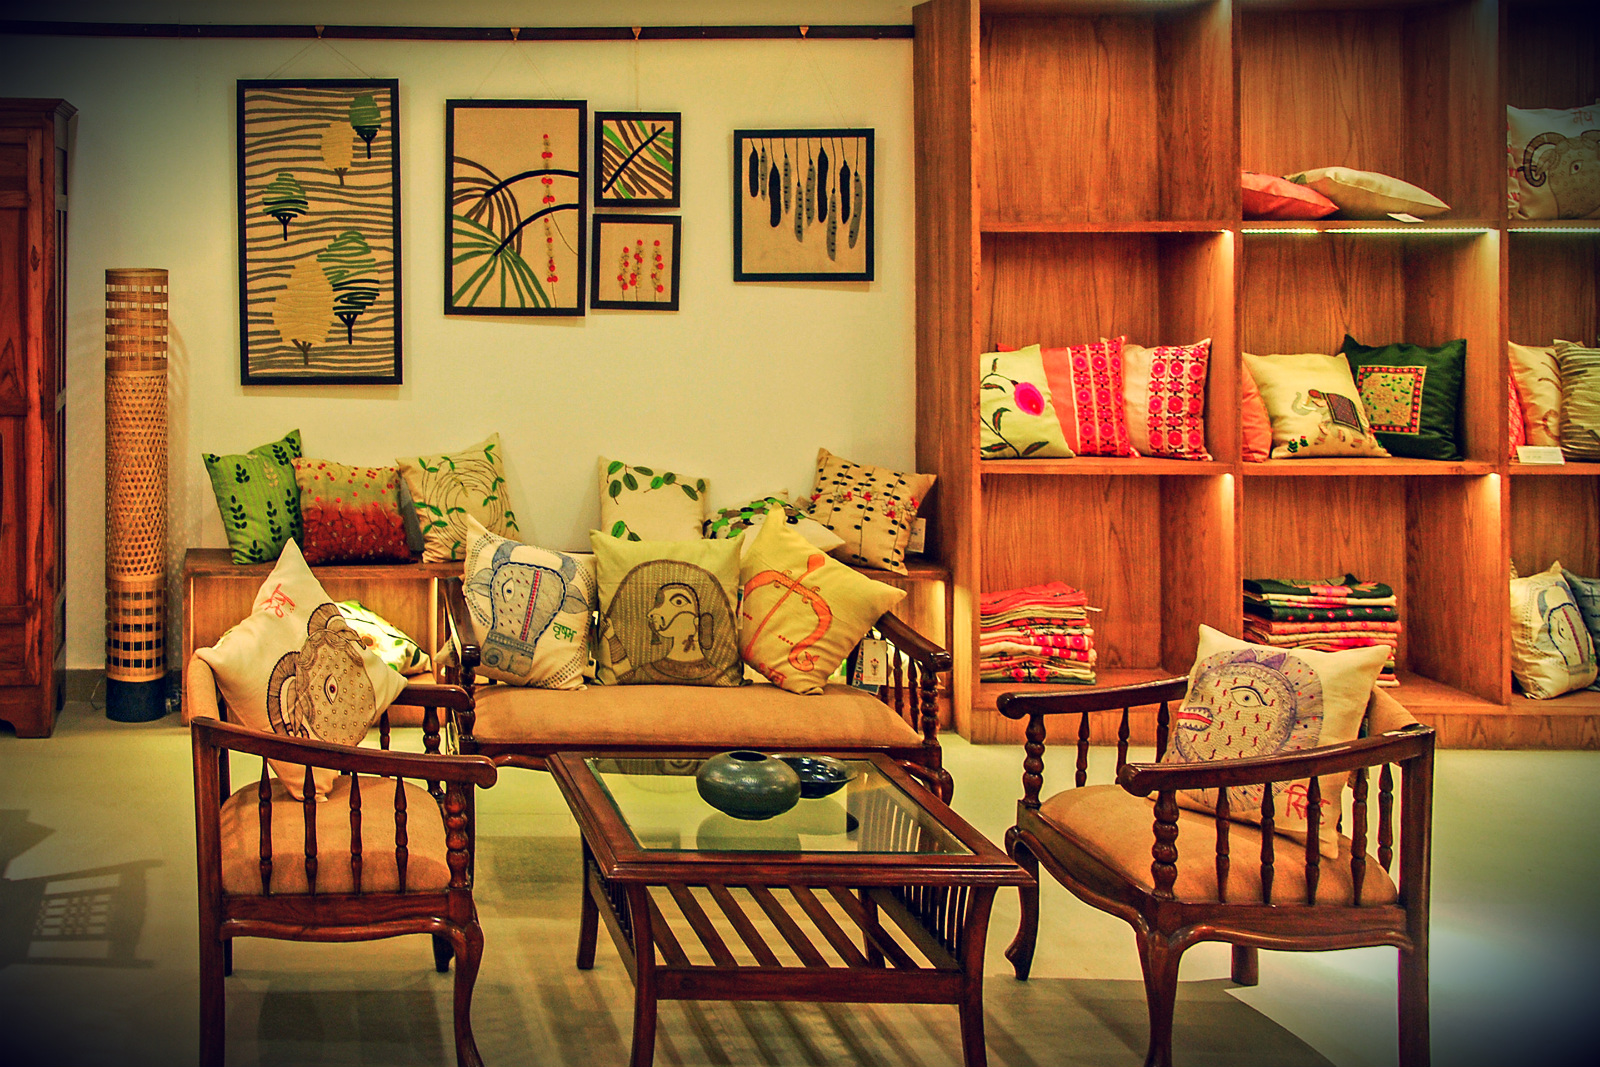 My decorative indian august store interior 1 for Indian traditional interior design ideas